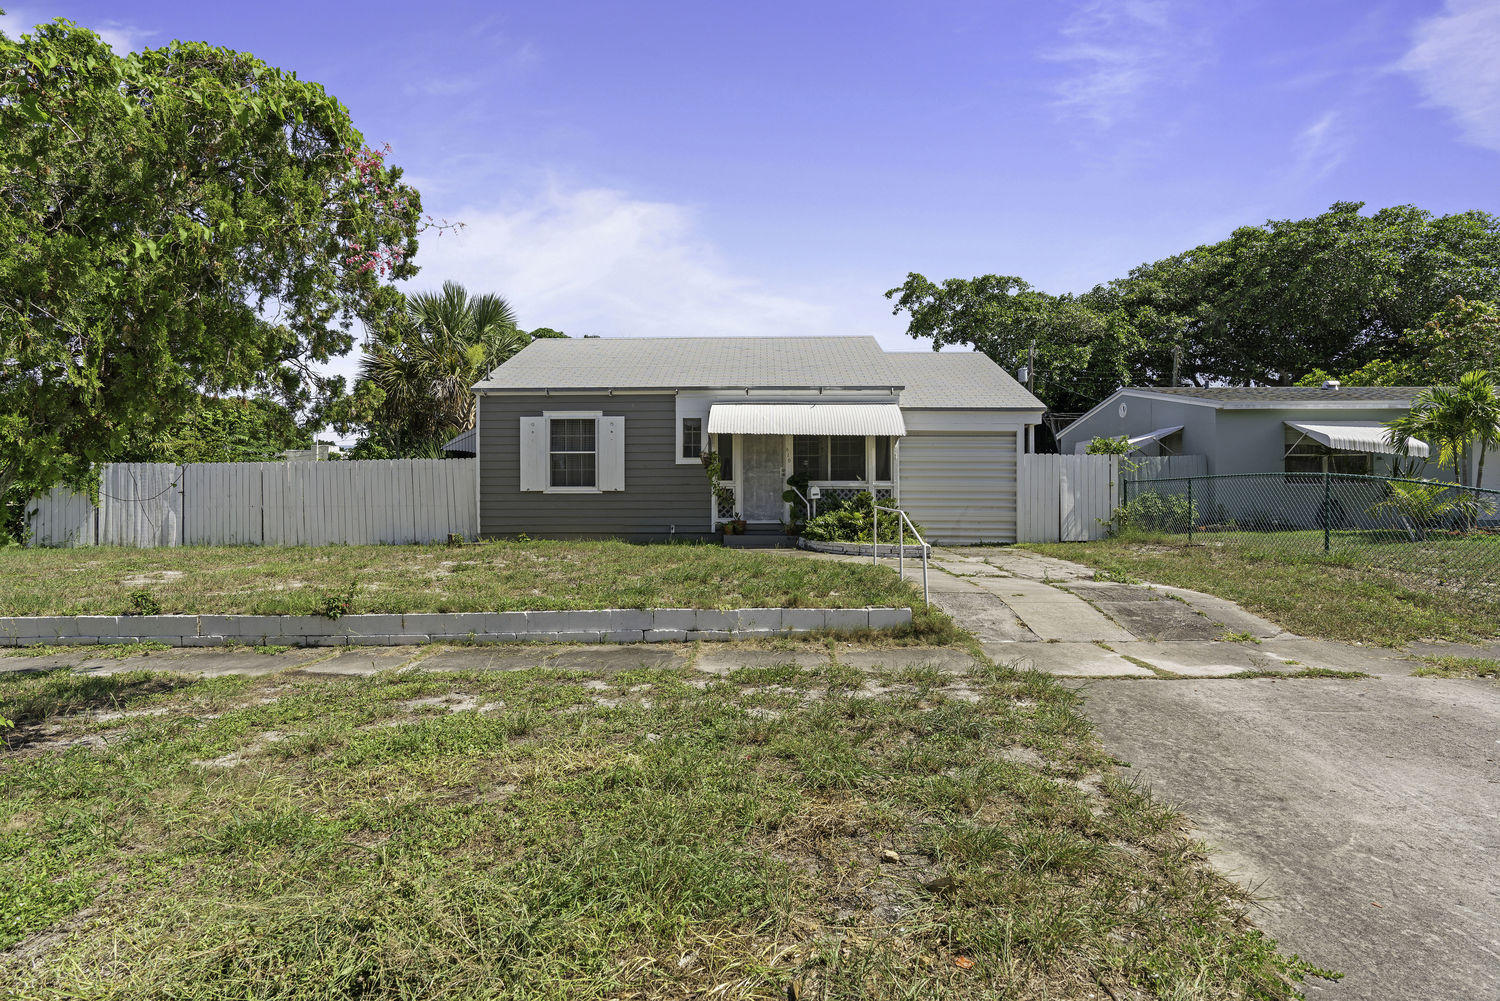 Home for sale in HILLSIDE PARK IN West Palm Beach Florida